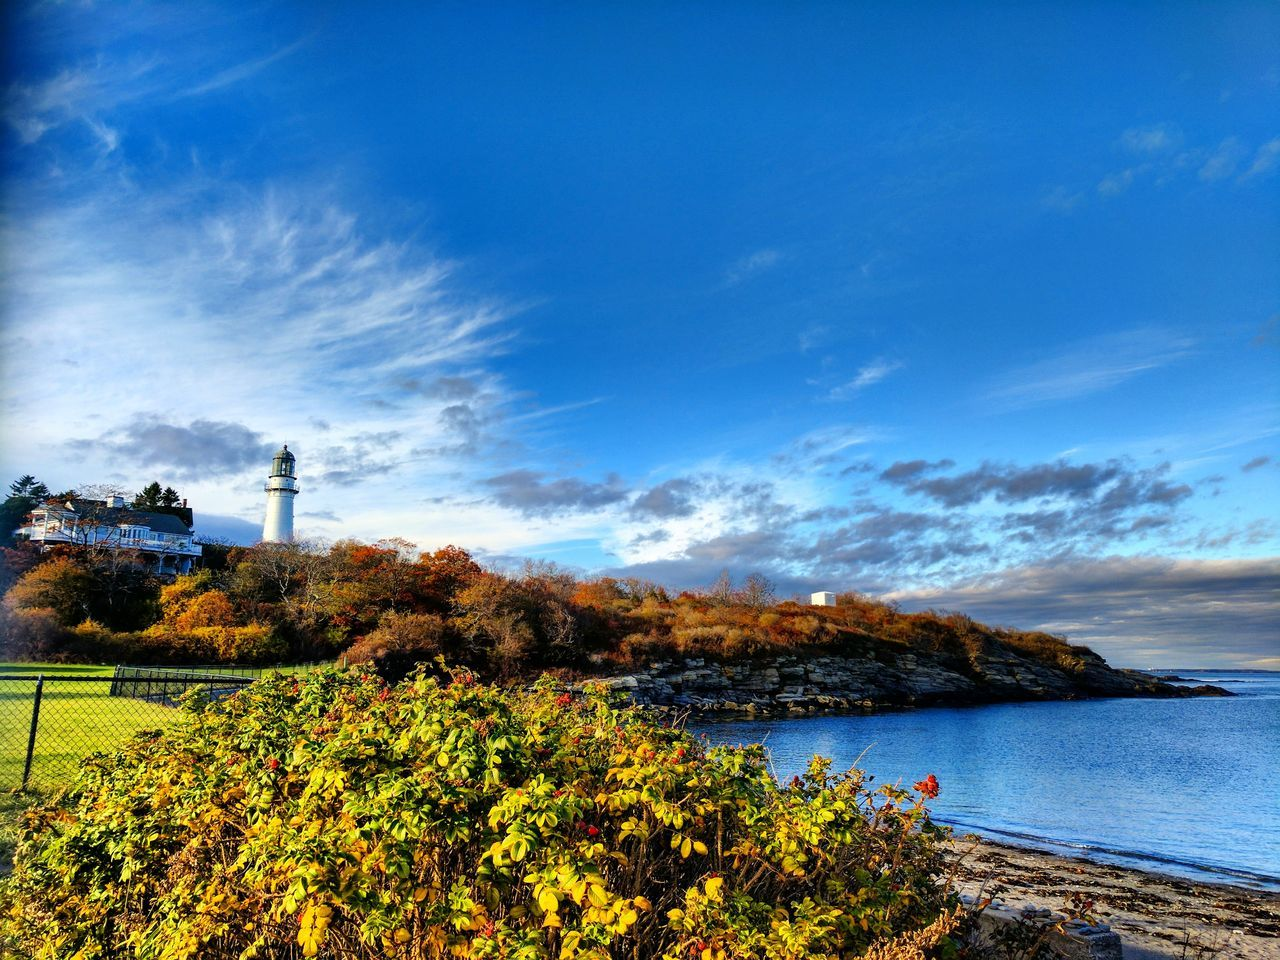 Taking in the sea breeze at Cape Elizabeth. Sky Nature Beauty In Nature Blue Growth Plant Scenics Outdoors Tranquility No People Cloud - Sky Travel Destinations Water Tranquil Scene Vacations Day Nature Landscape Peaceful Relaxing Cape Elizabeth Lighthouse Me Maine Cape Elzabeth Lighthouse